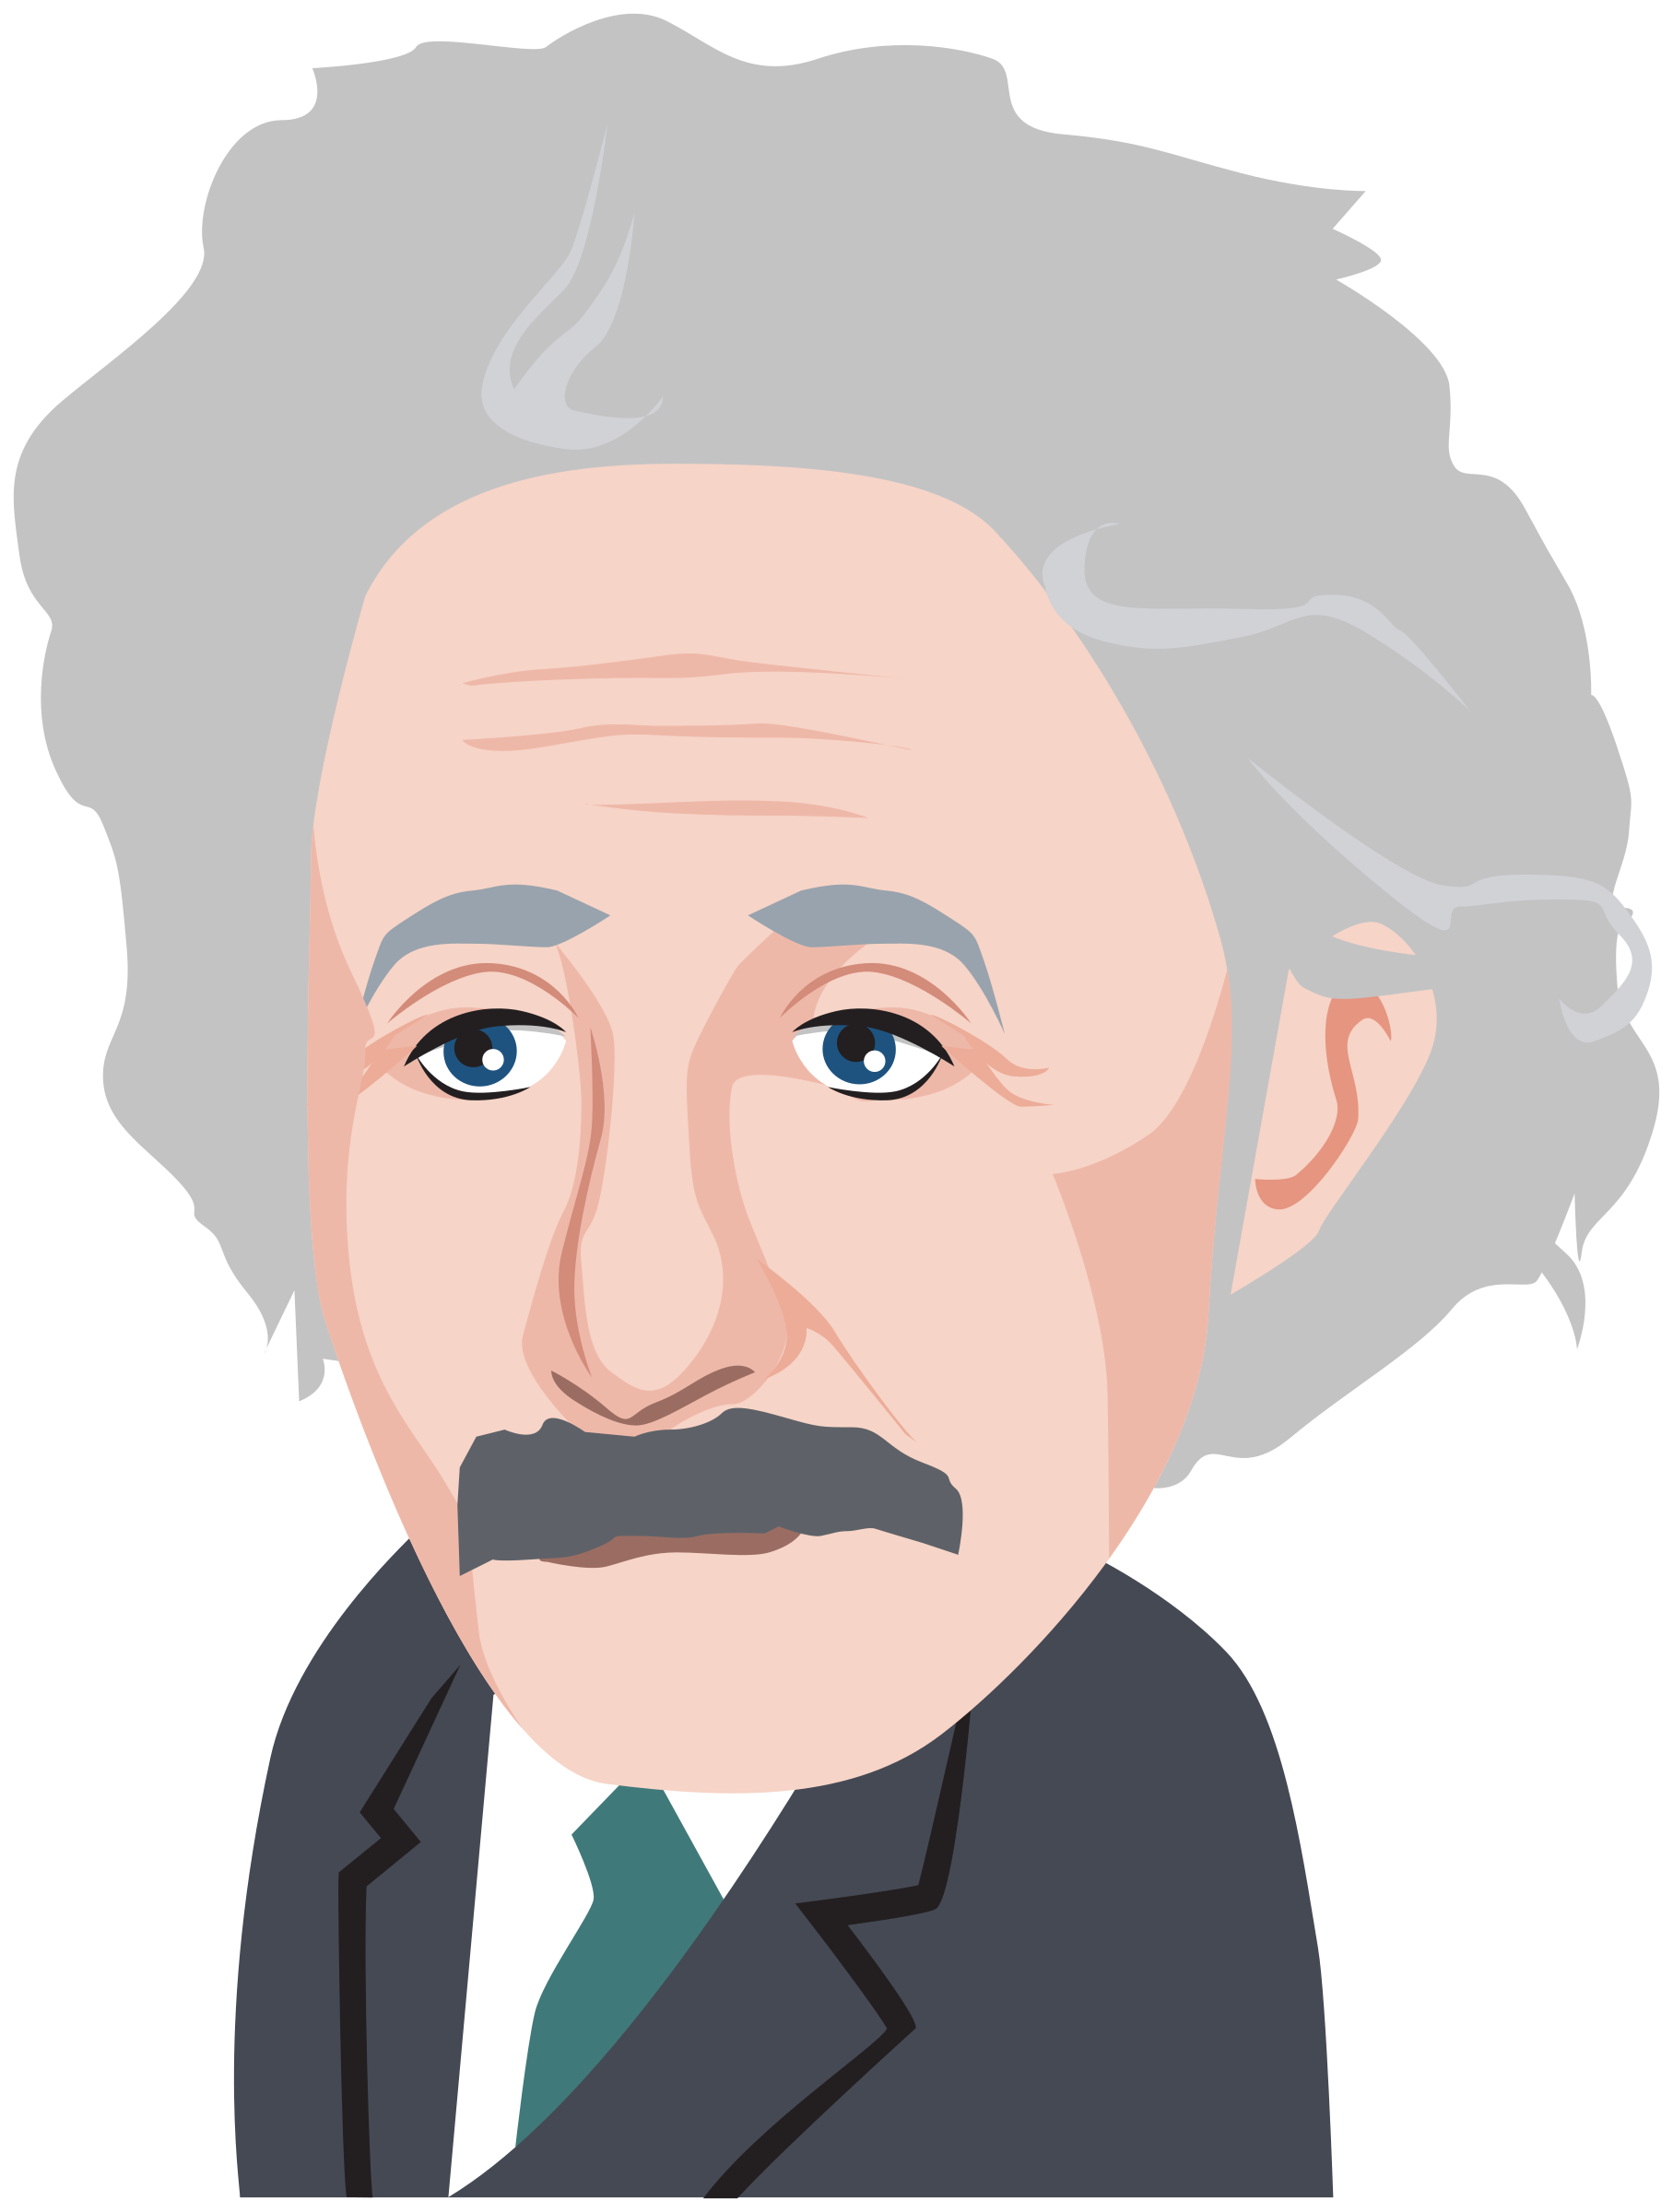 Albert einstein clipart clipart images gallery for free download.